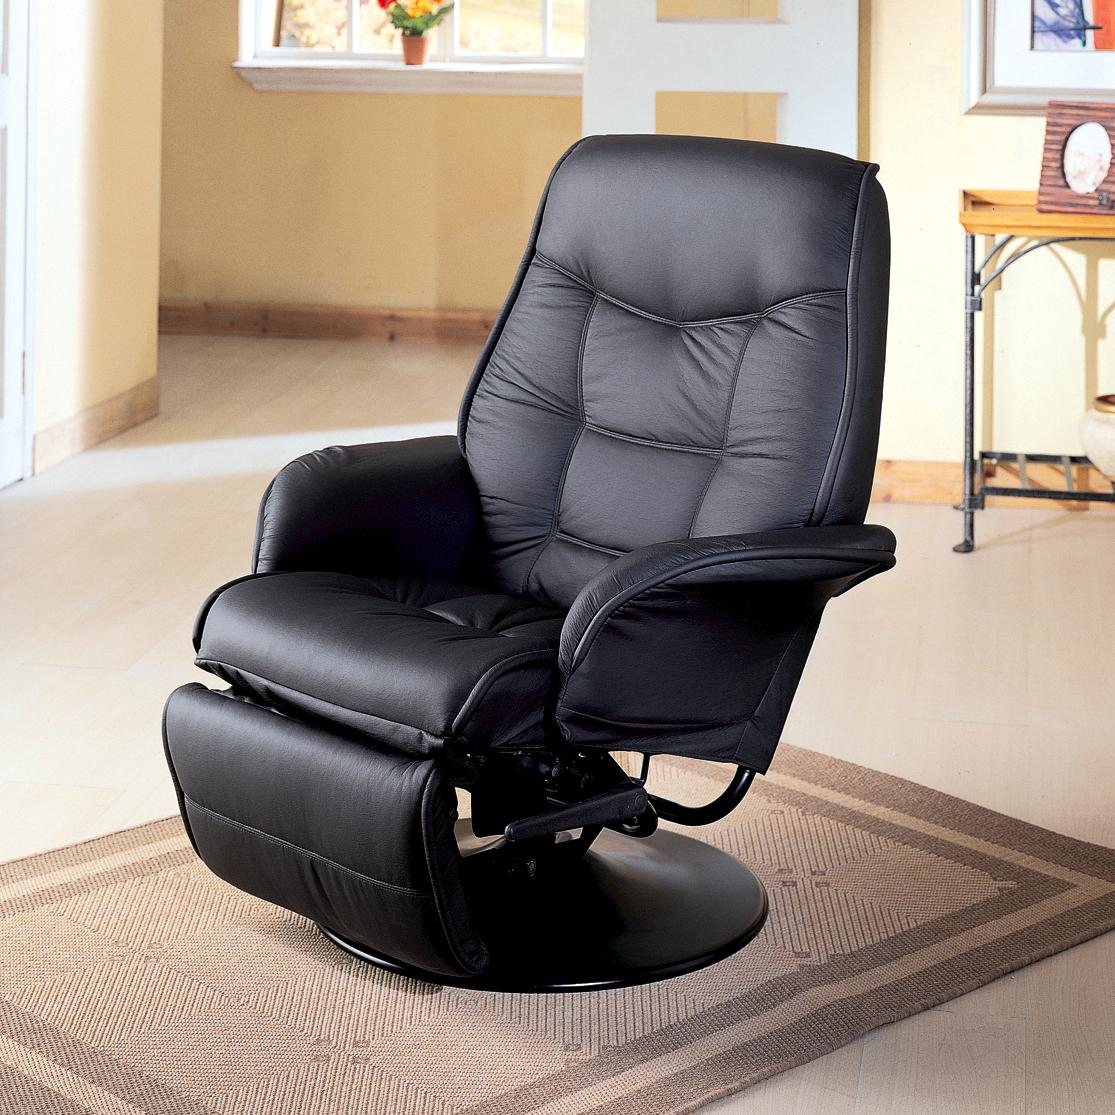 Image of: Leather Recliner Chair Furniture